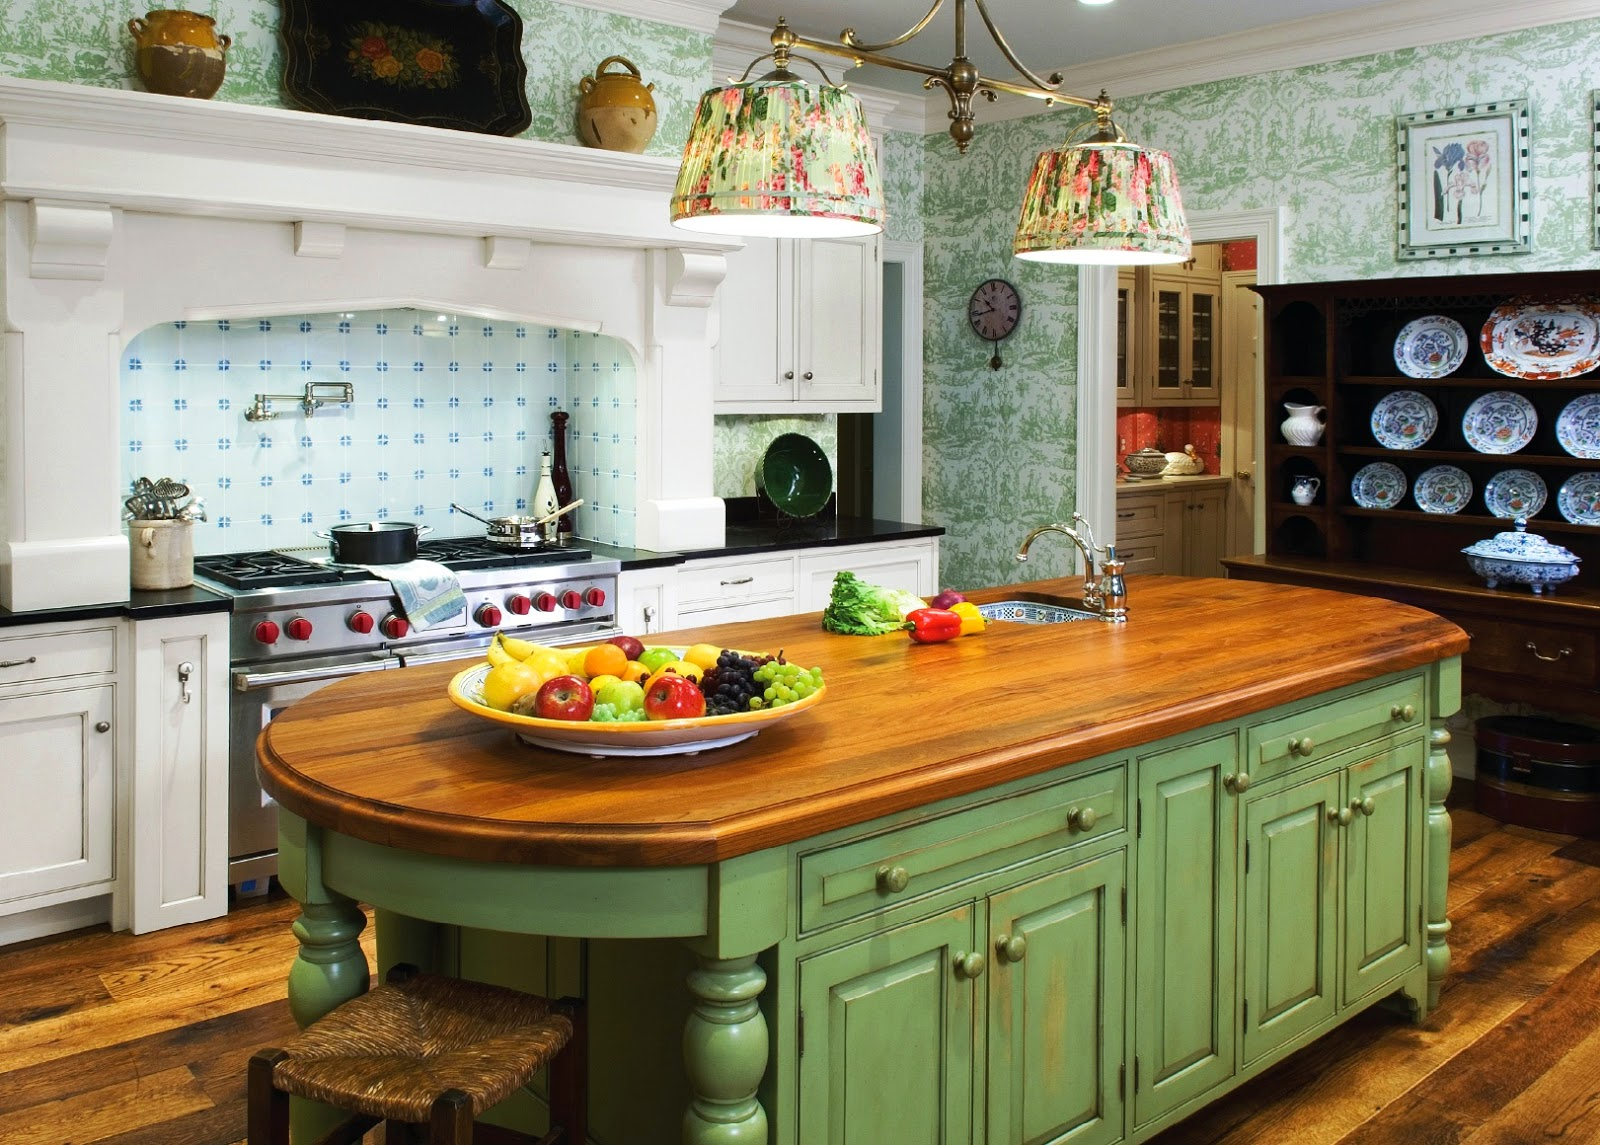 Remodeling Your Kitchen With Flea Market Flair Ideas For